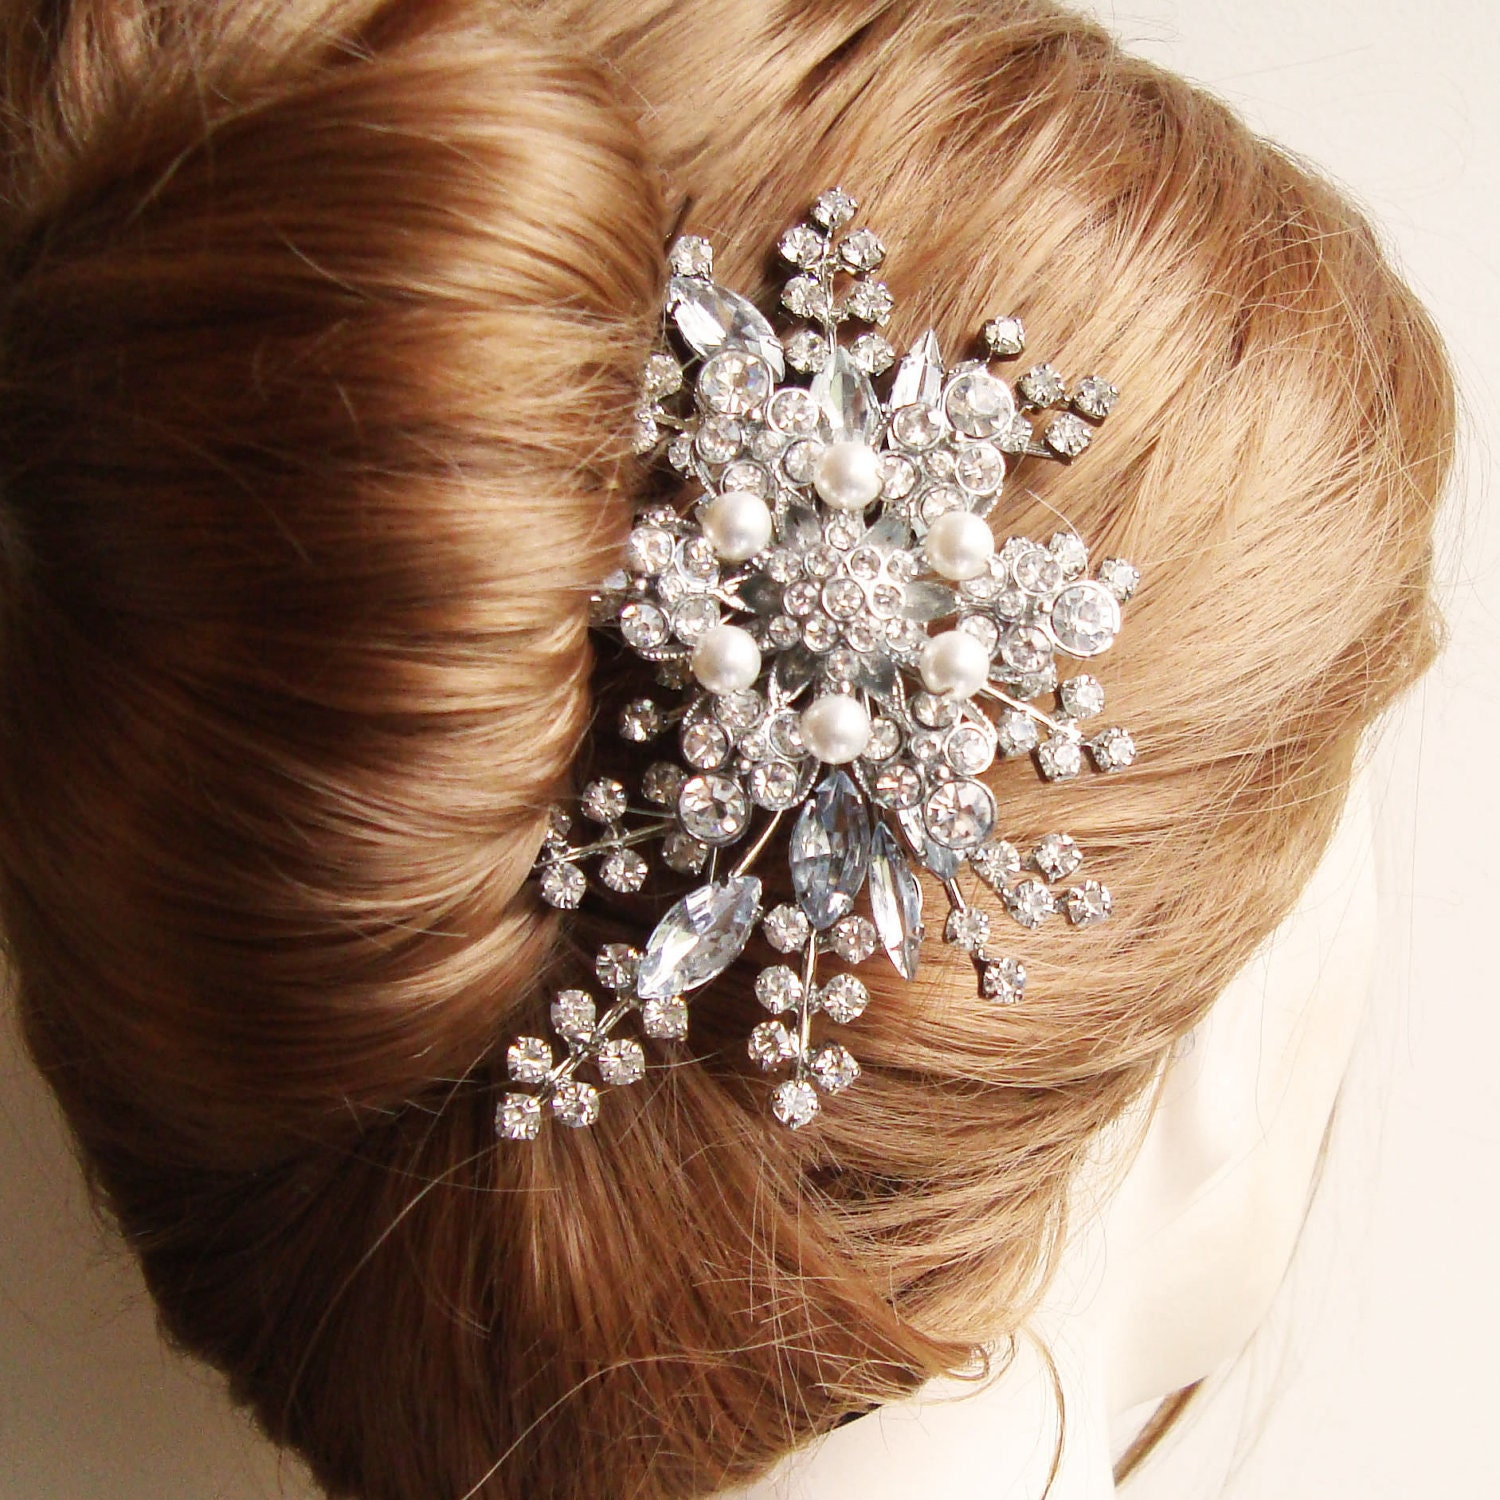 French Twist Hair Pieces 117